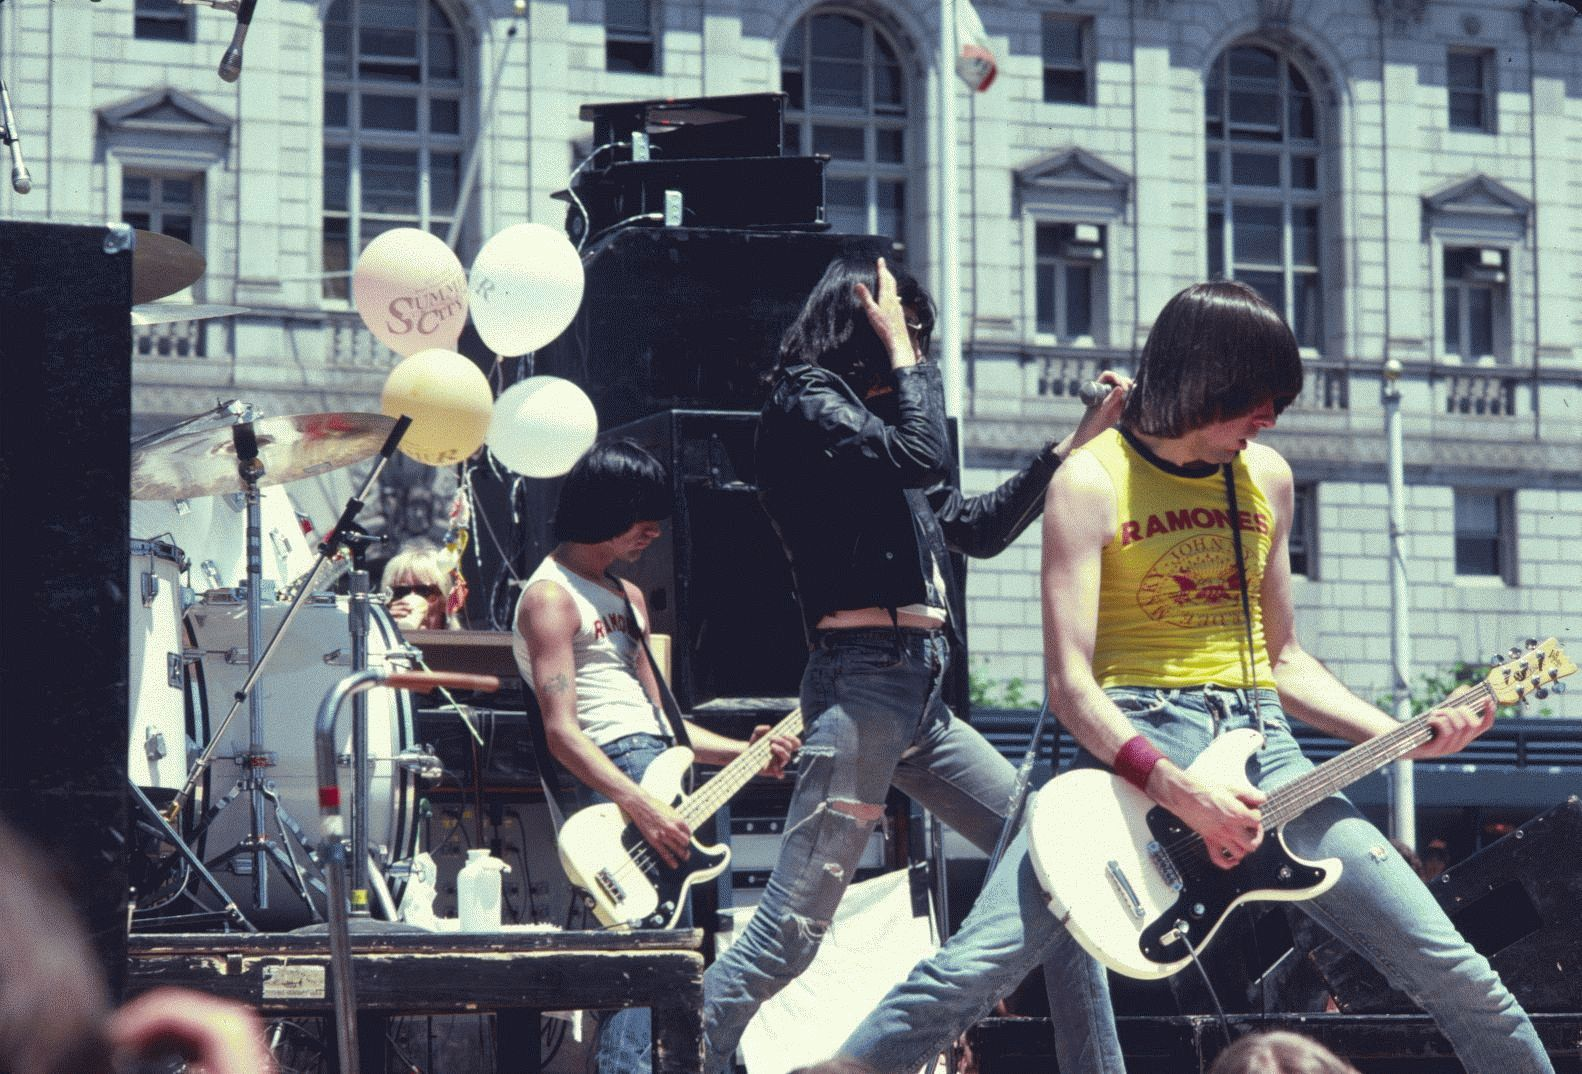 The Ramones, Civic Center, San Francisco, 1979 (Horizontal)